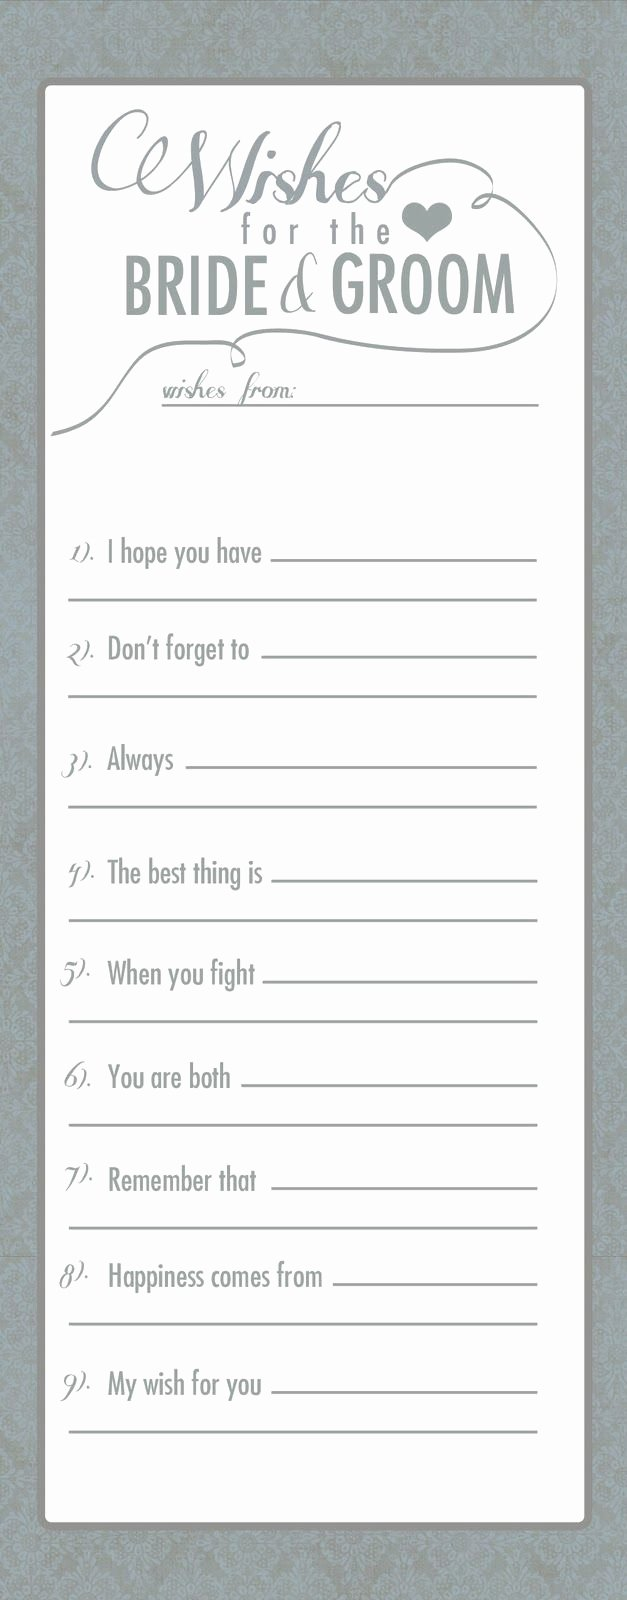 Wedding Advice Cards Template Fresh 17 Best Ideas About Marriage Advice Cards On Pinterest